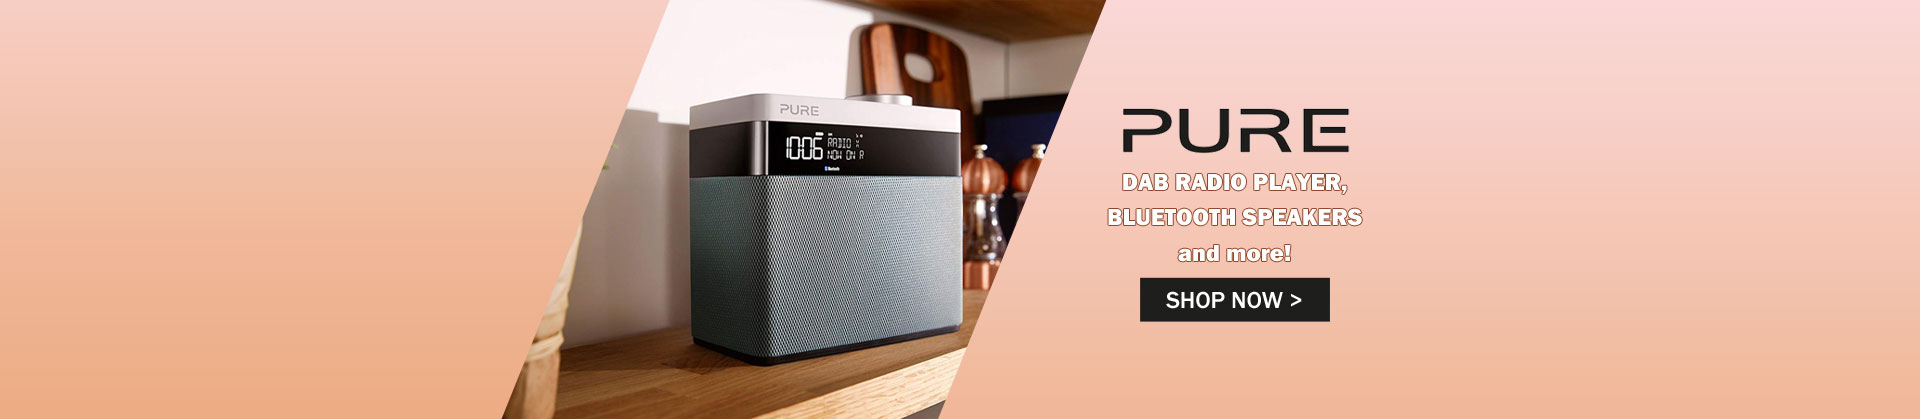 Pure DAB Radio Players & Bluetooth Speakers